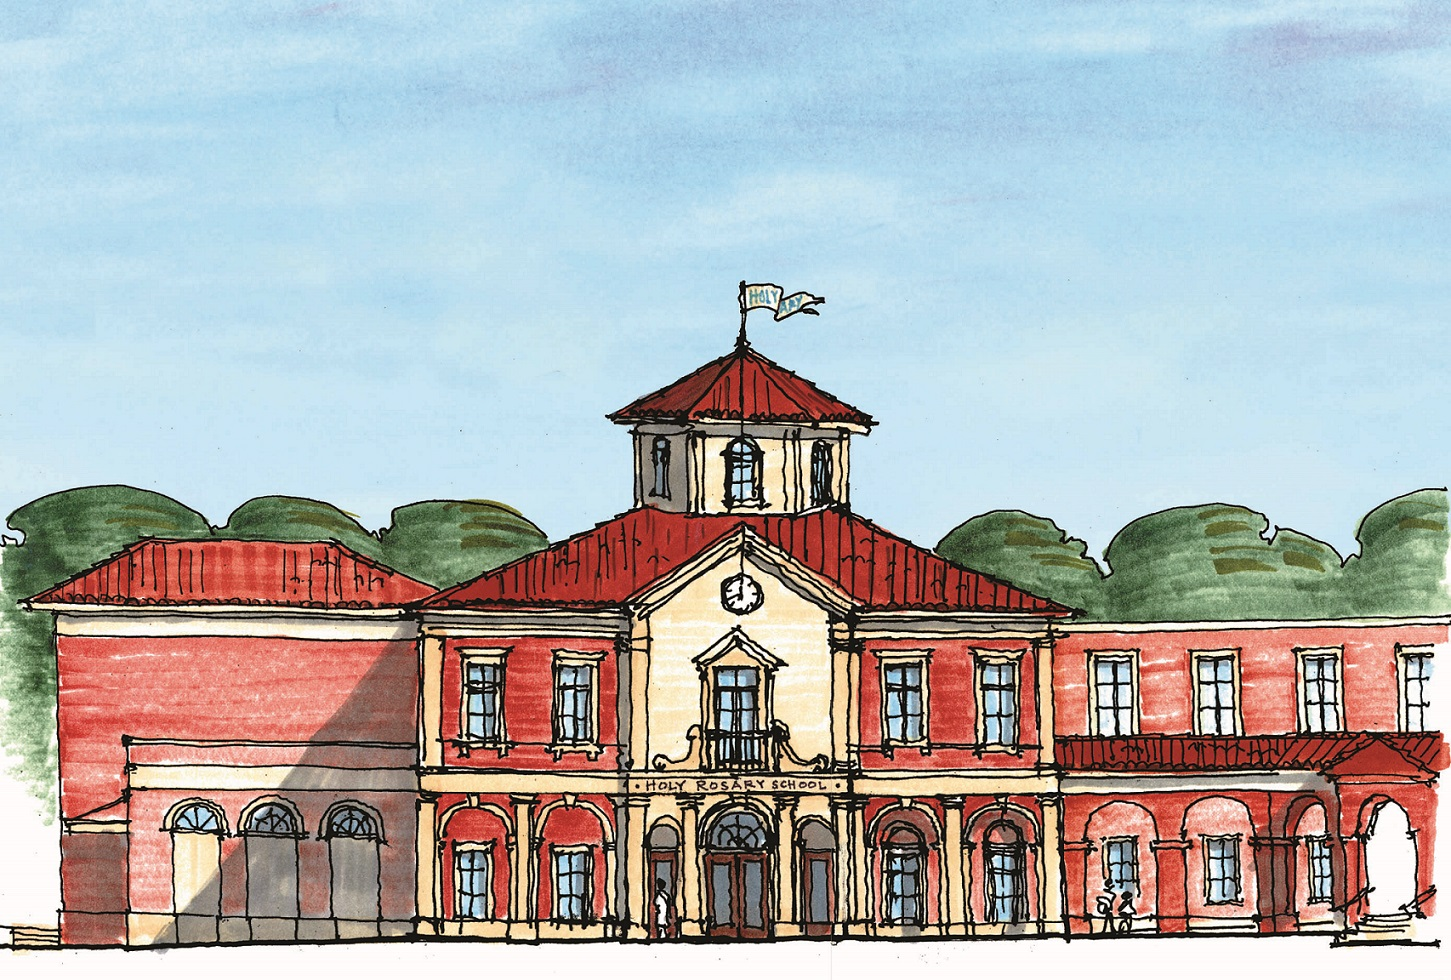 ELEVATION RENDERING OF PROPOSED BUILDING